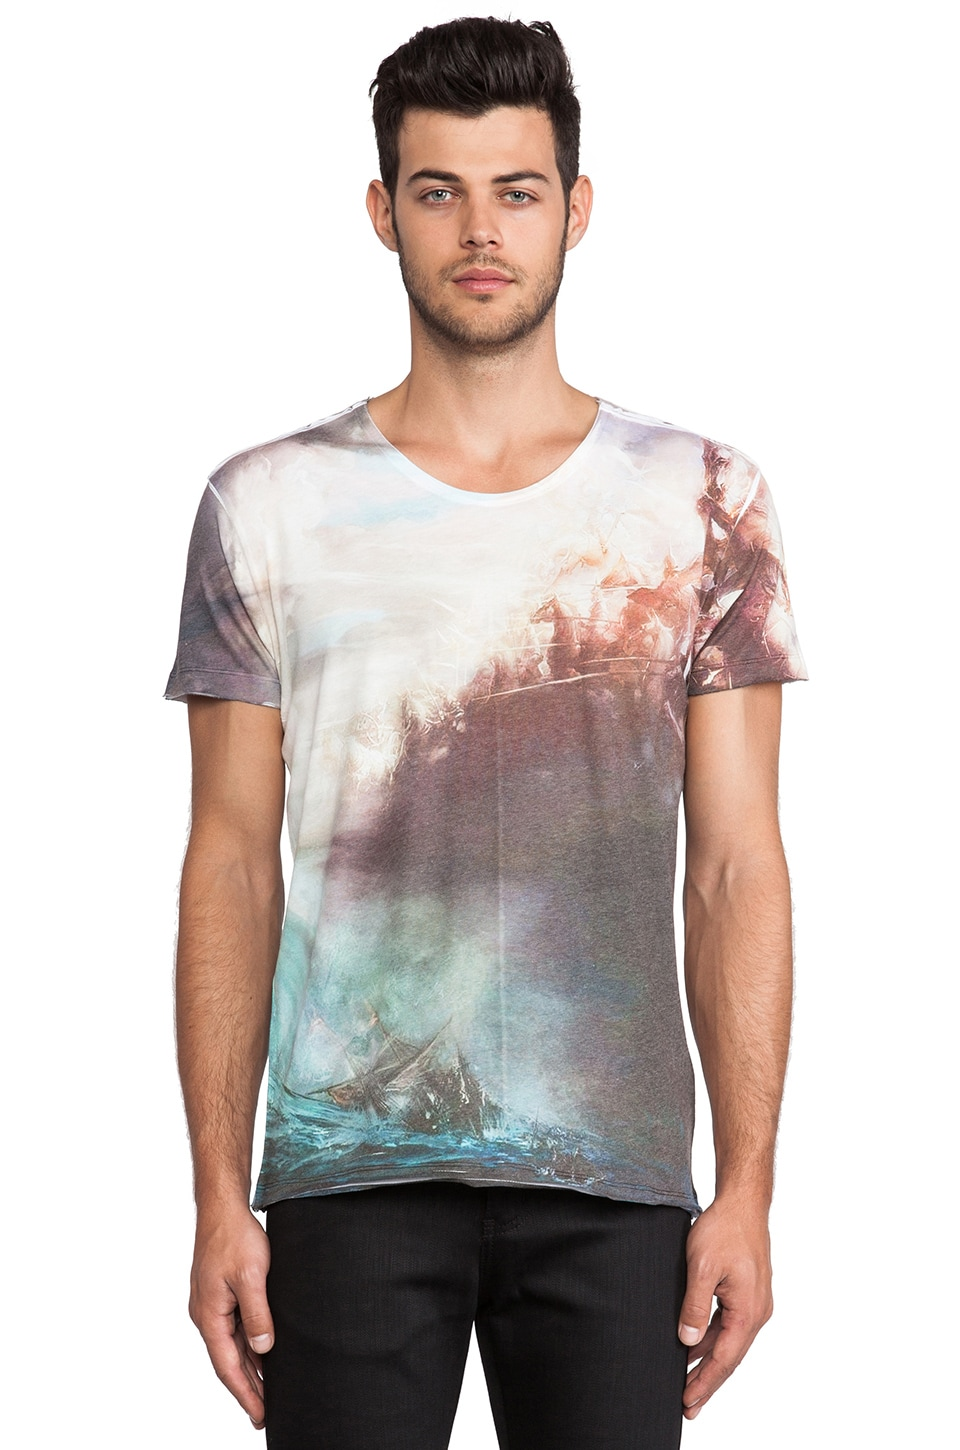 Sons of Heroes Poseidon T-Shirt in Multi